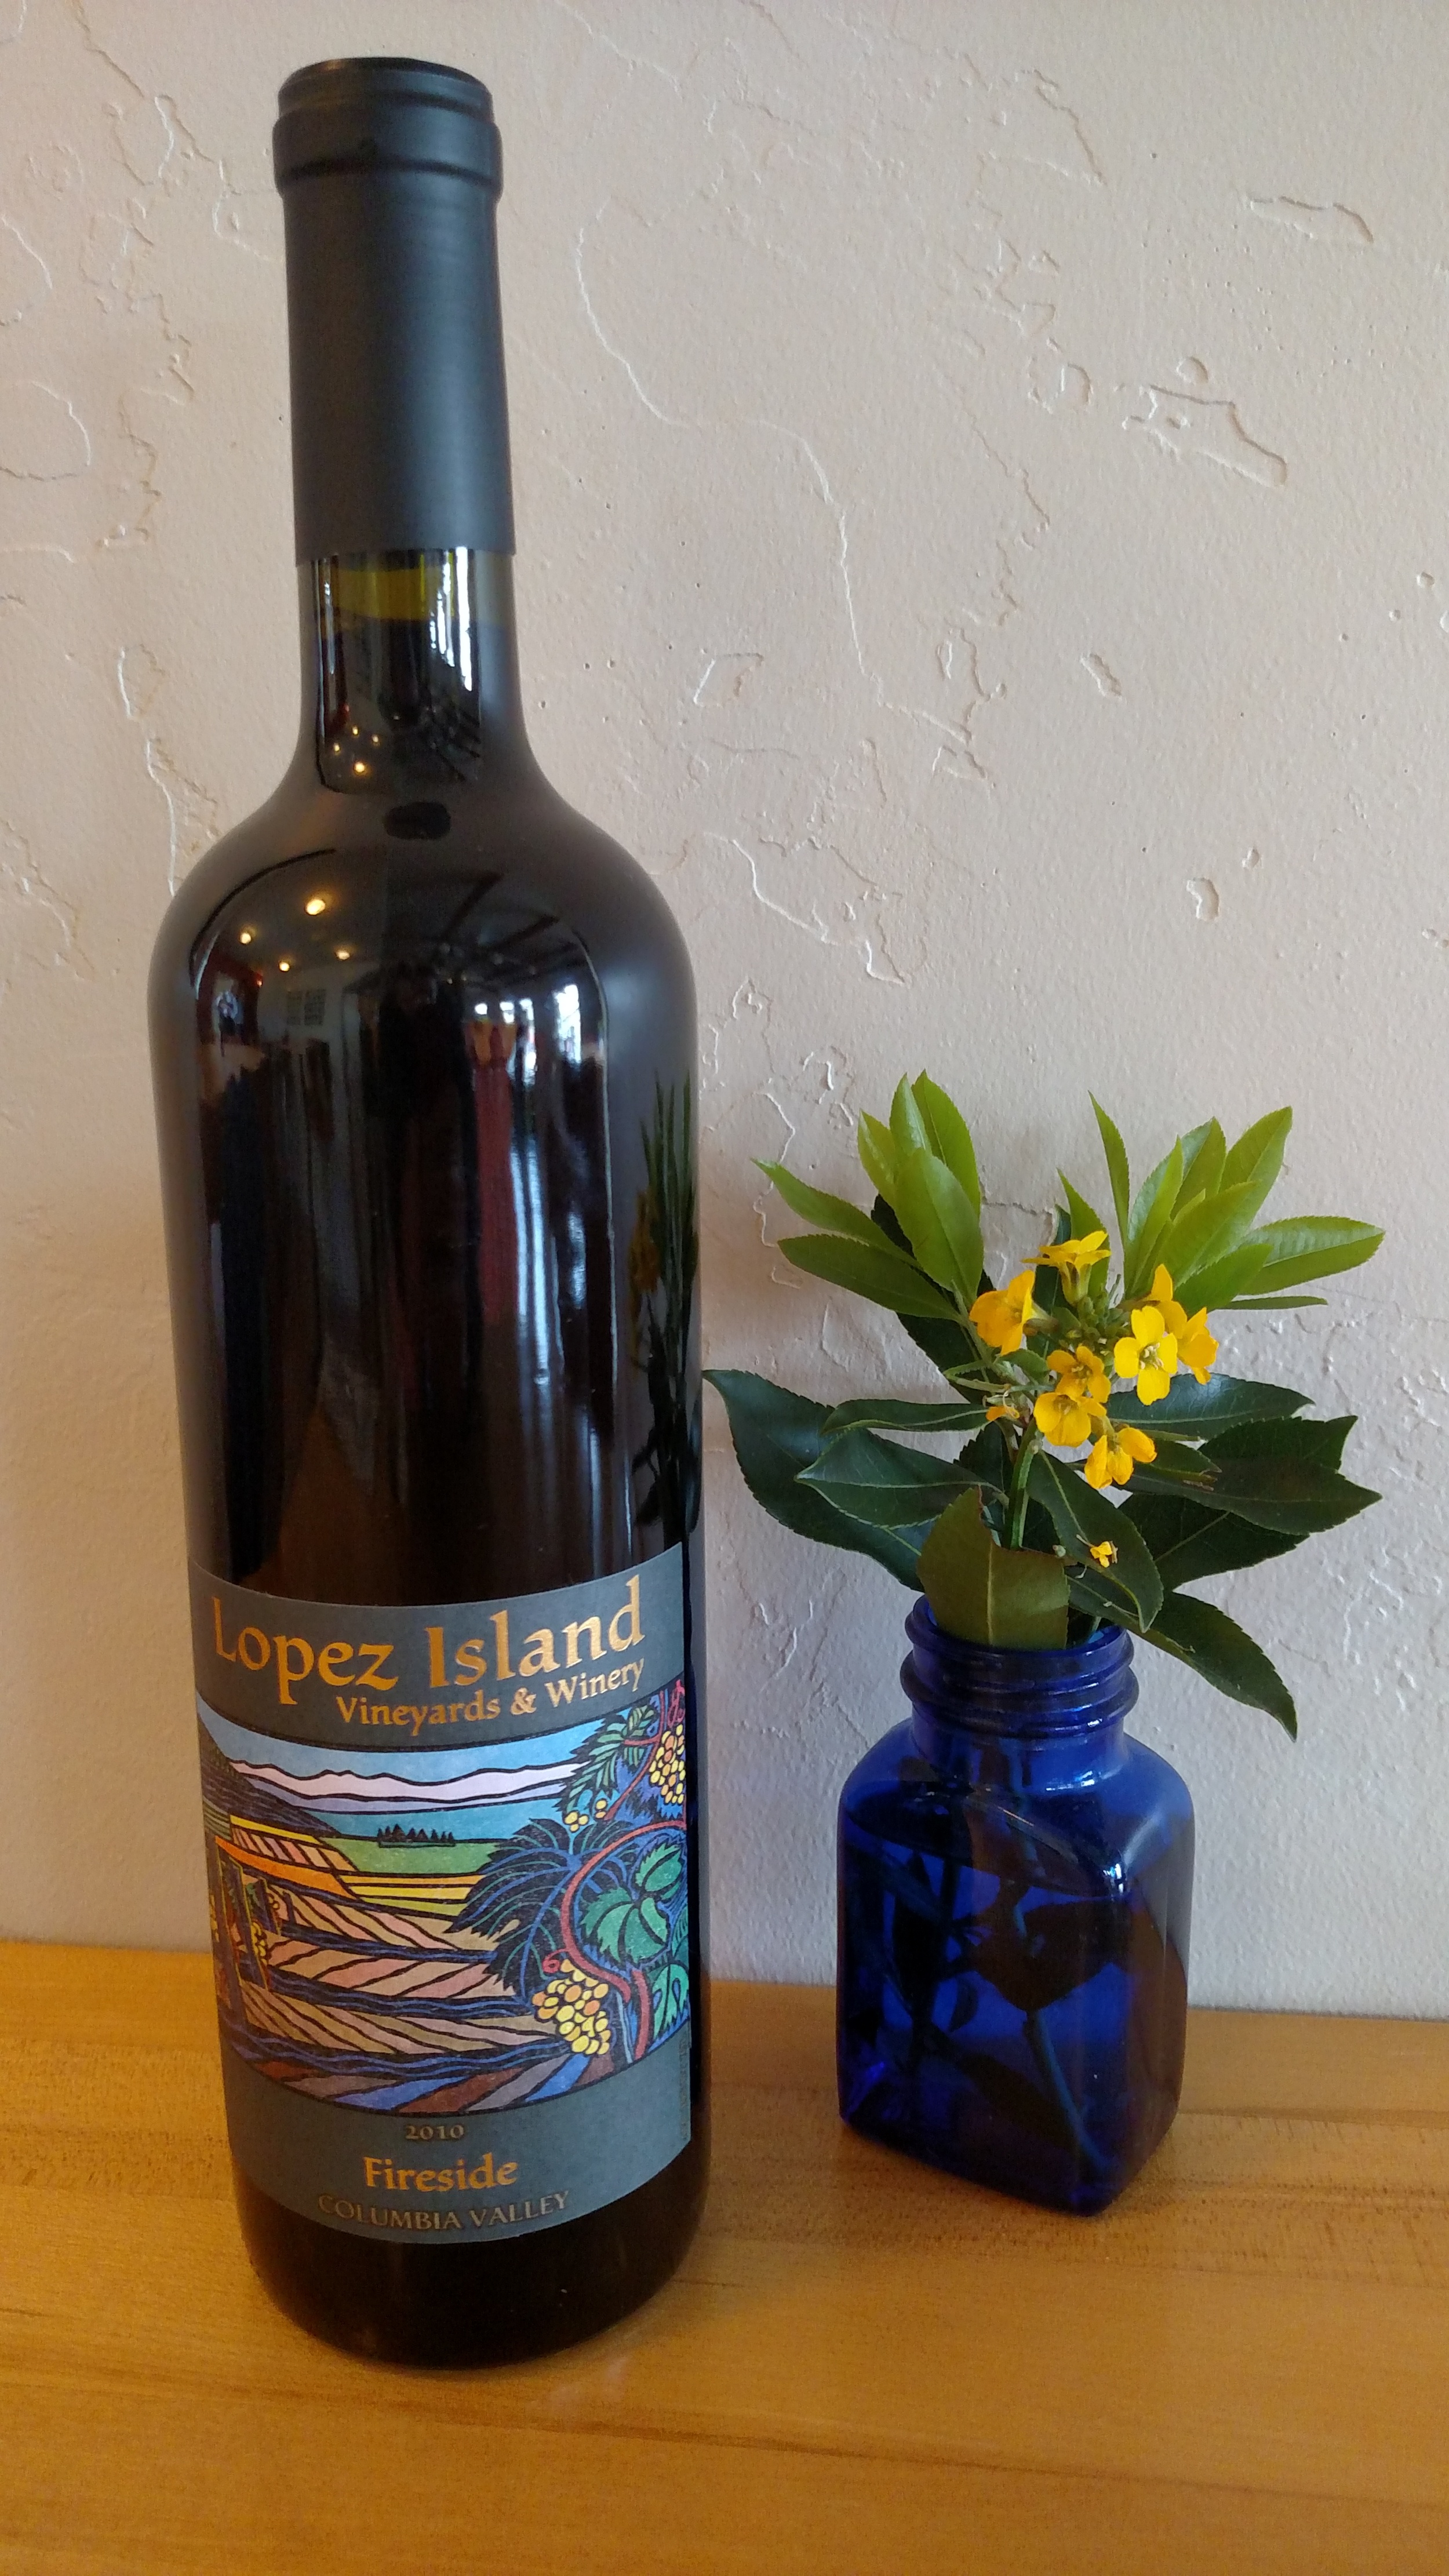 Lopez Island Vineyards Port